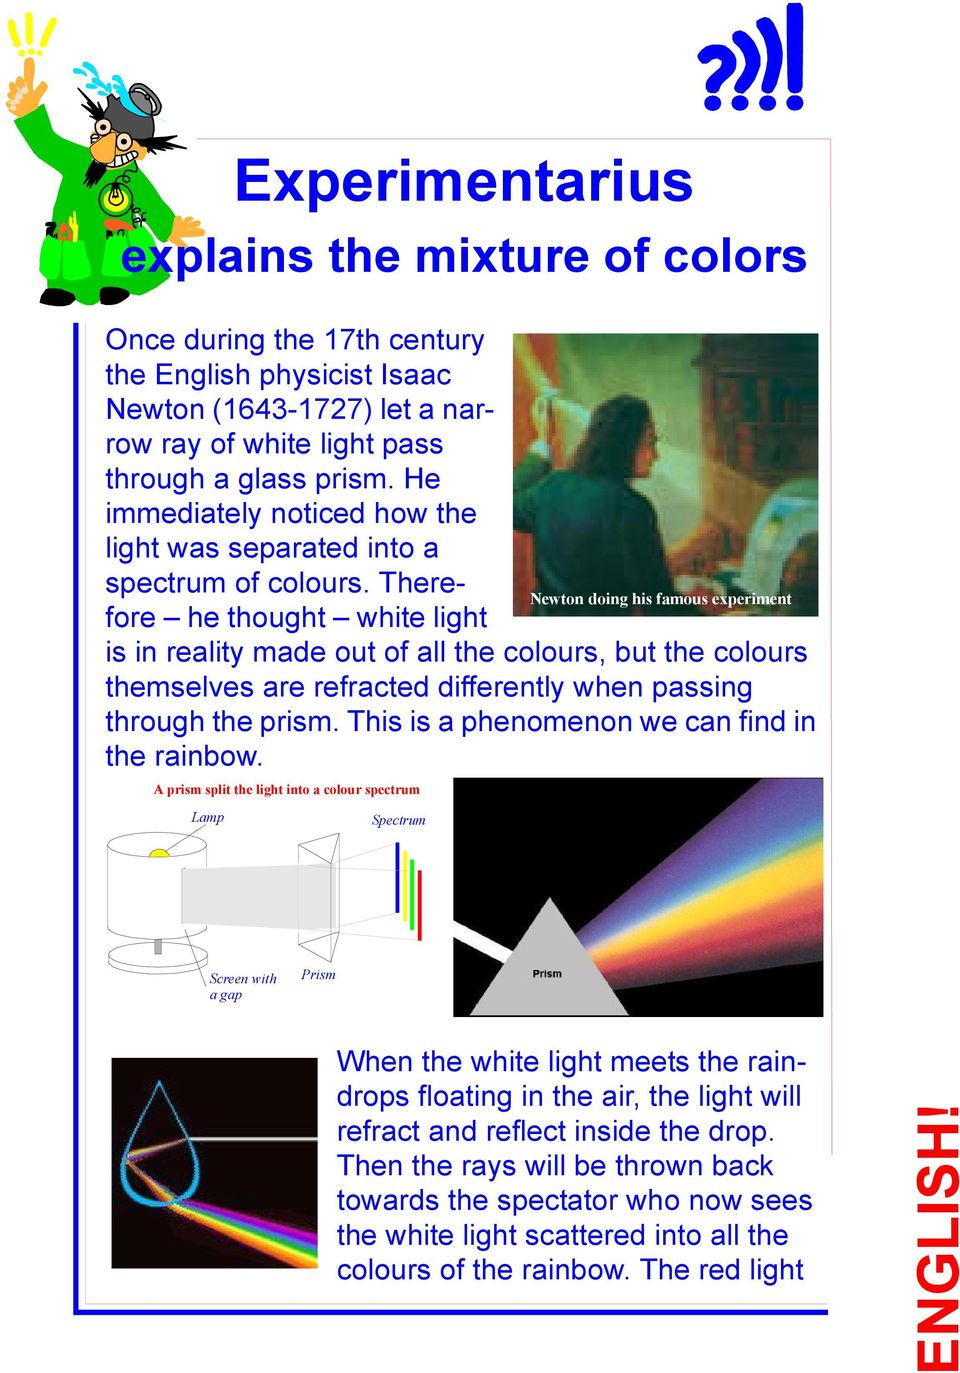 Therefore he thought white light ewton doing his famous experiment is in reality made out of all the colours, but the colours themselves are refracted differently when passing through the prism.